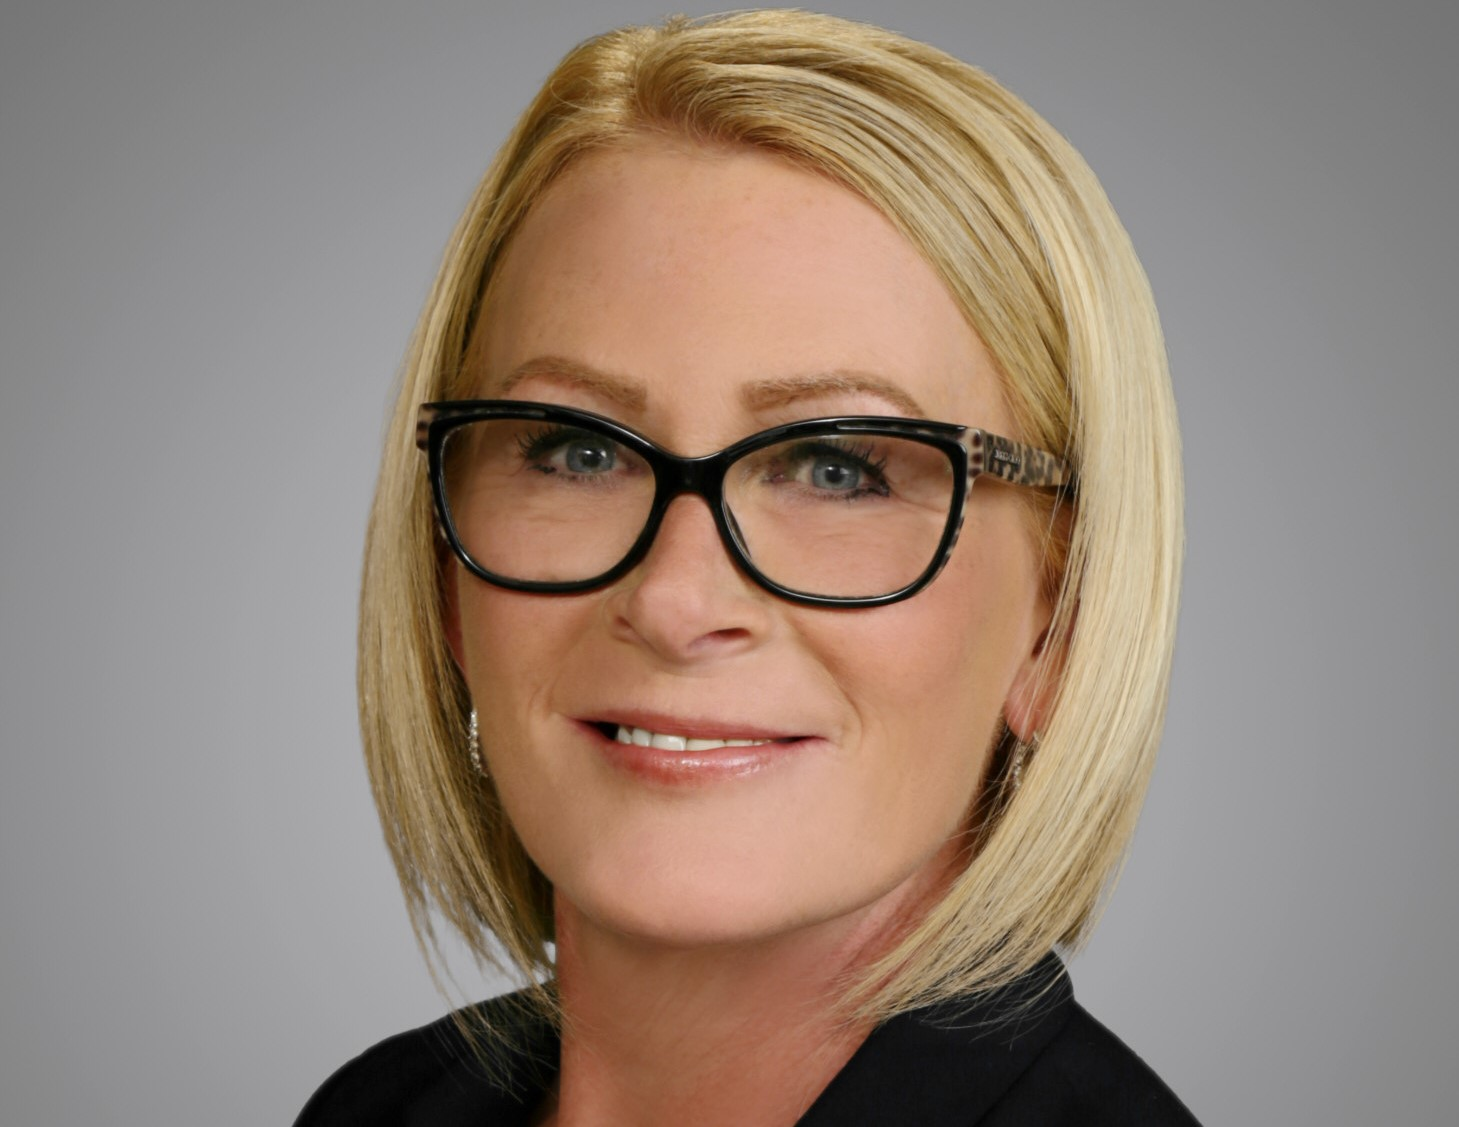 Centric Bank Names Julie Conway Vice President of Its Doylestown Concierge Financial Center